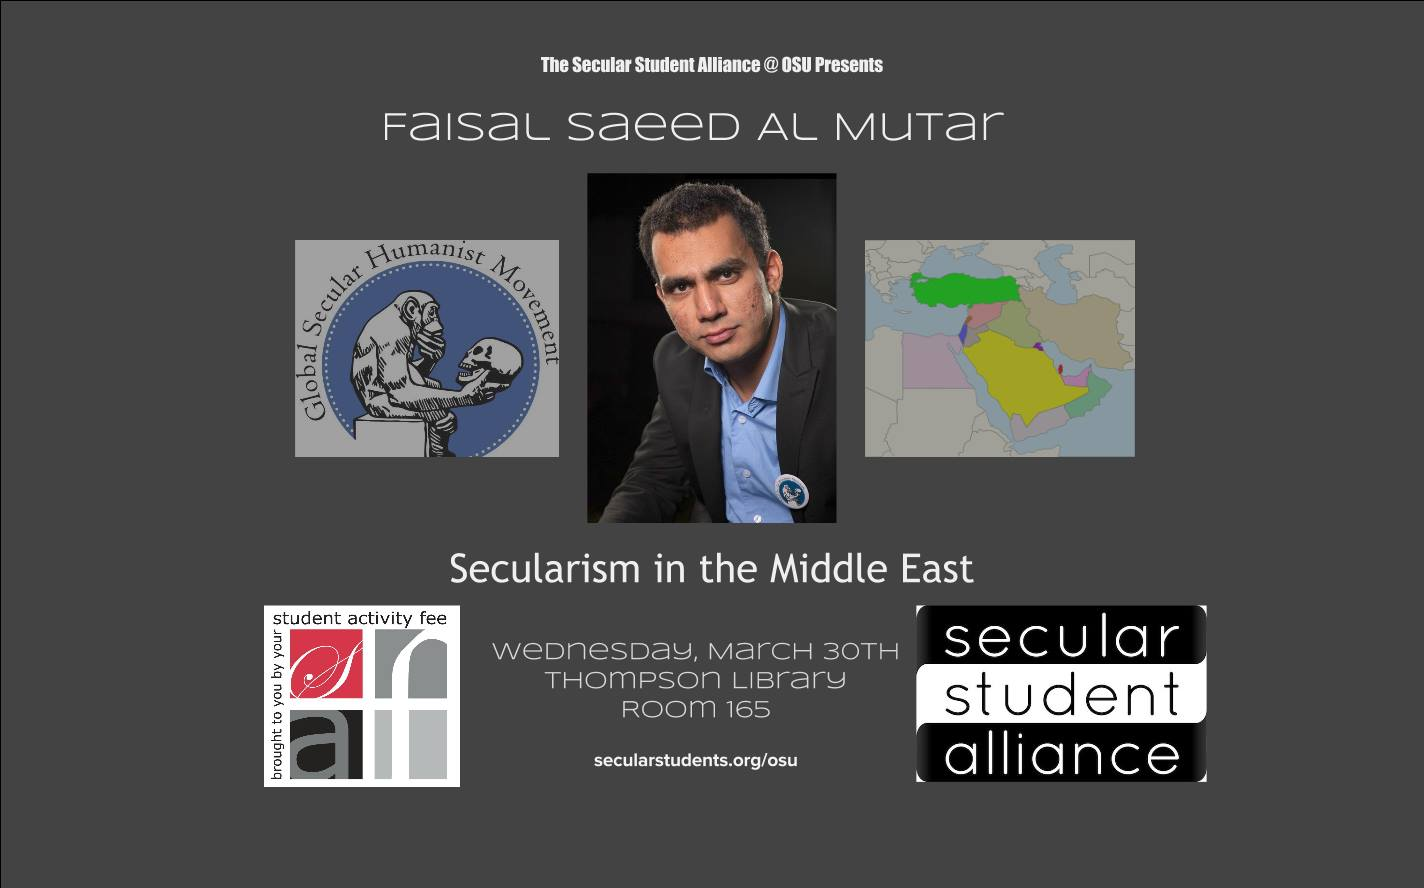 Secularism in the Middle East poster